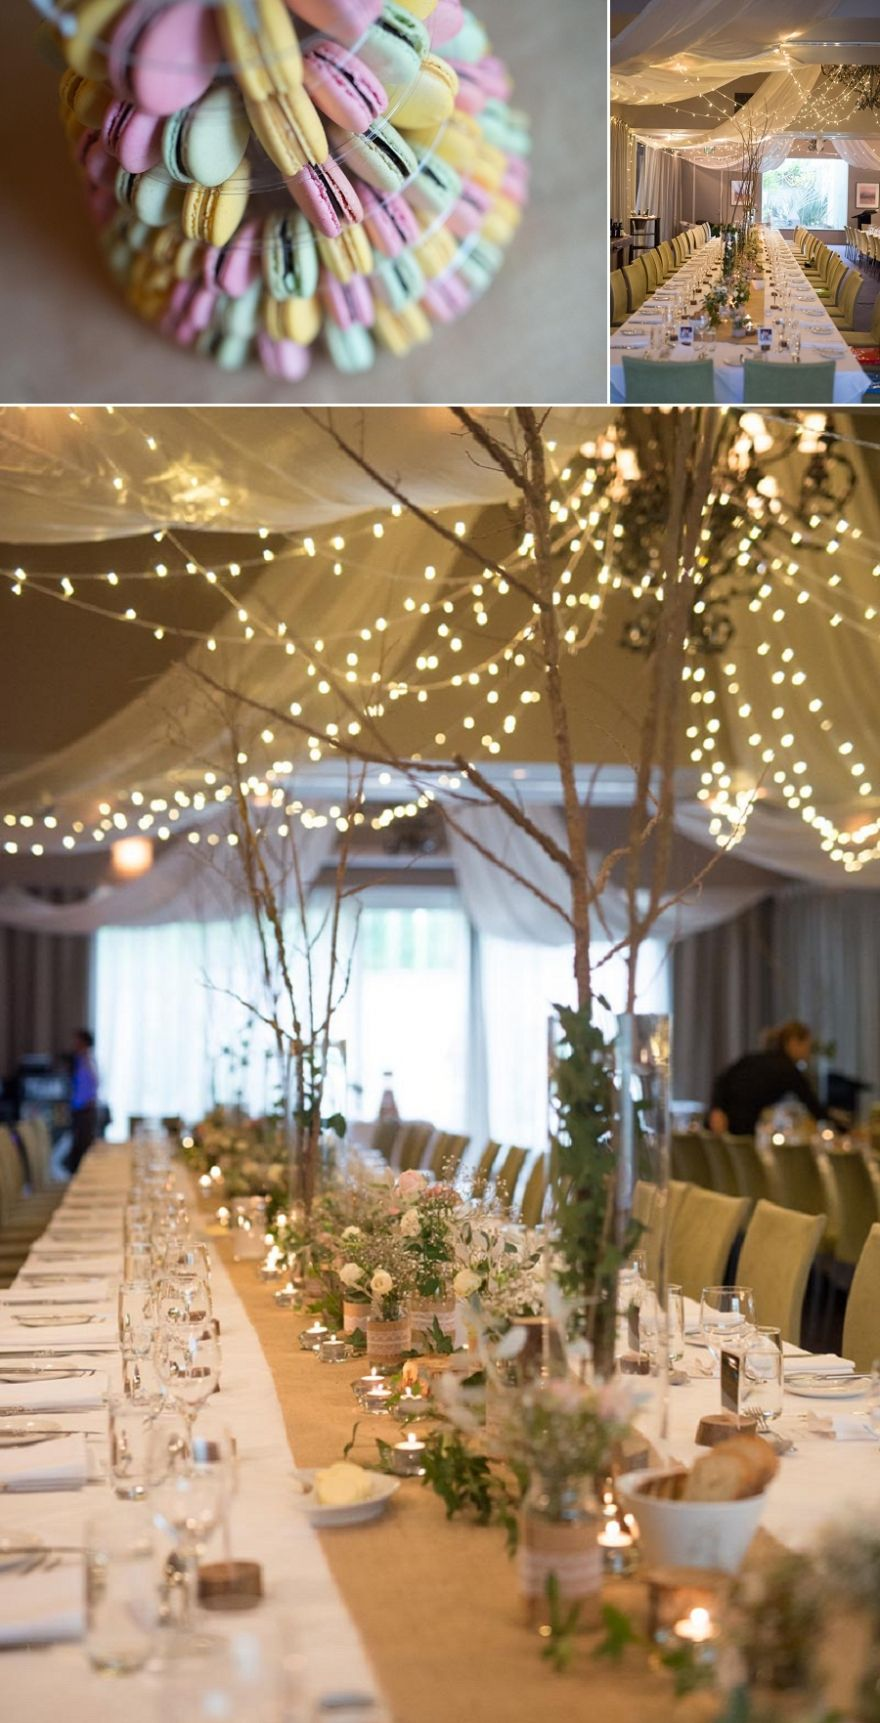 Vintage Inspired Country Wedding Reception With Macaroons Cake And Banquet Style Tables At The Lakehouse In Daylesford By Elise Gow Photography